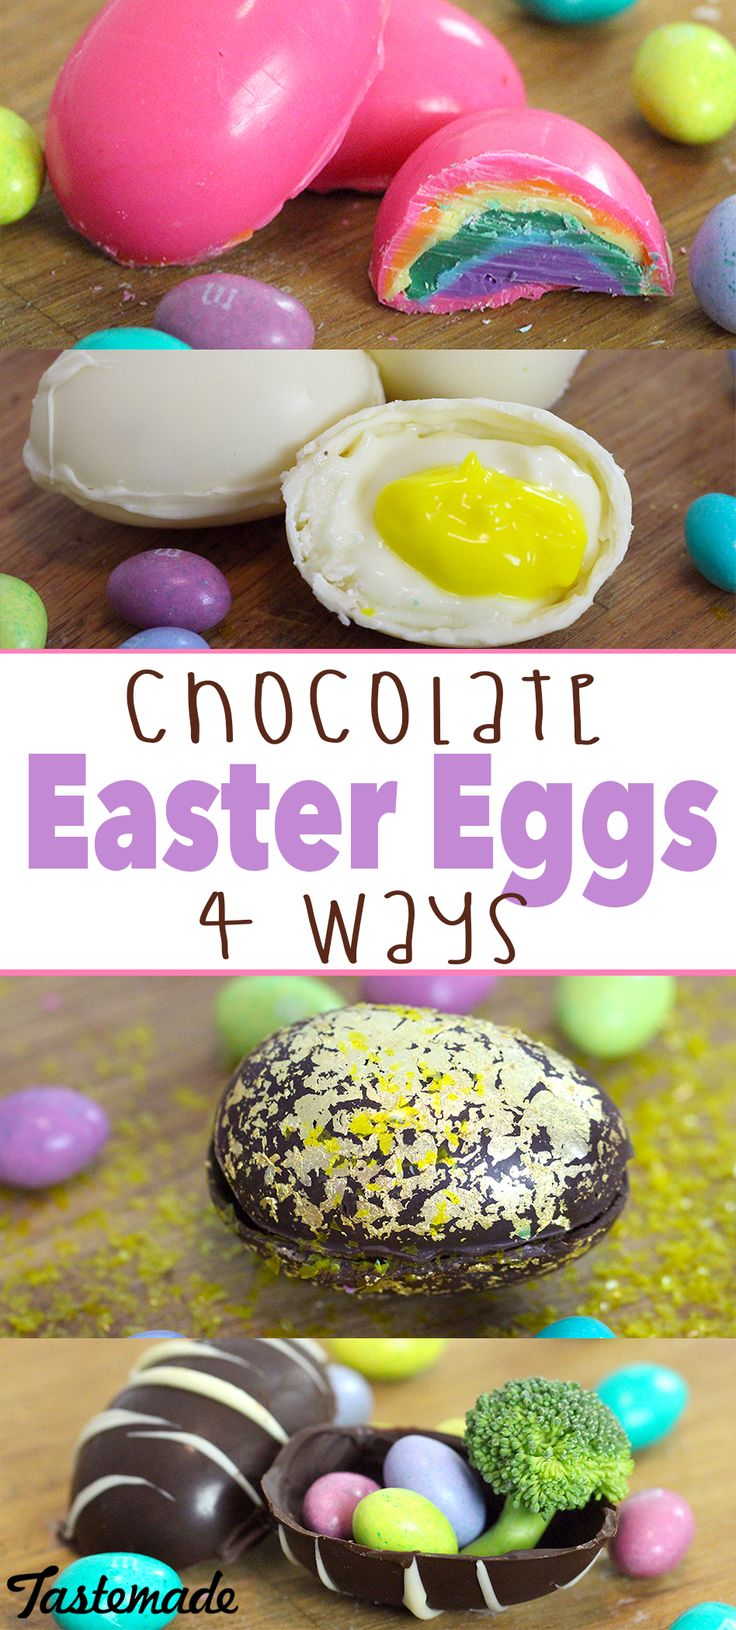 From rainbow to candy-filled, chocolate Easter eggs have never been more fun and delicious!